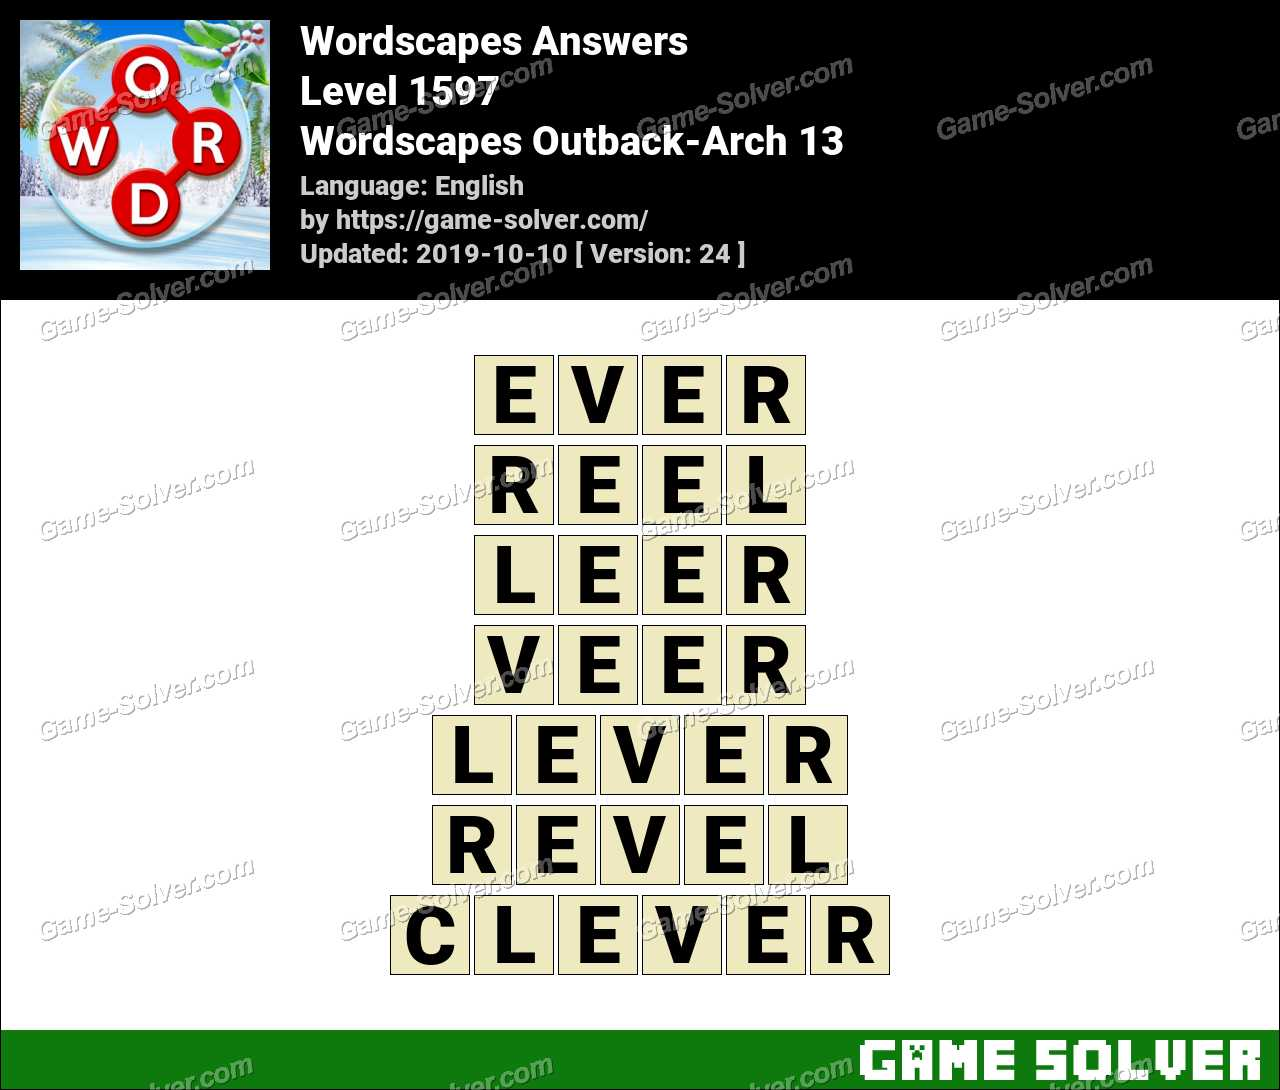 Wordscapes Outback-Arch 13 Answers